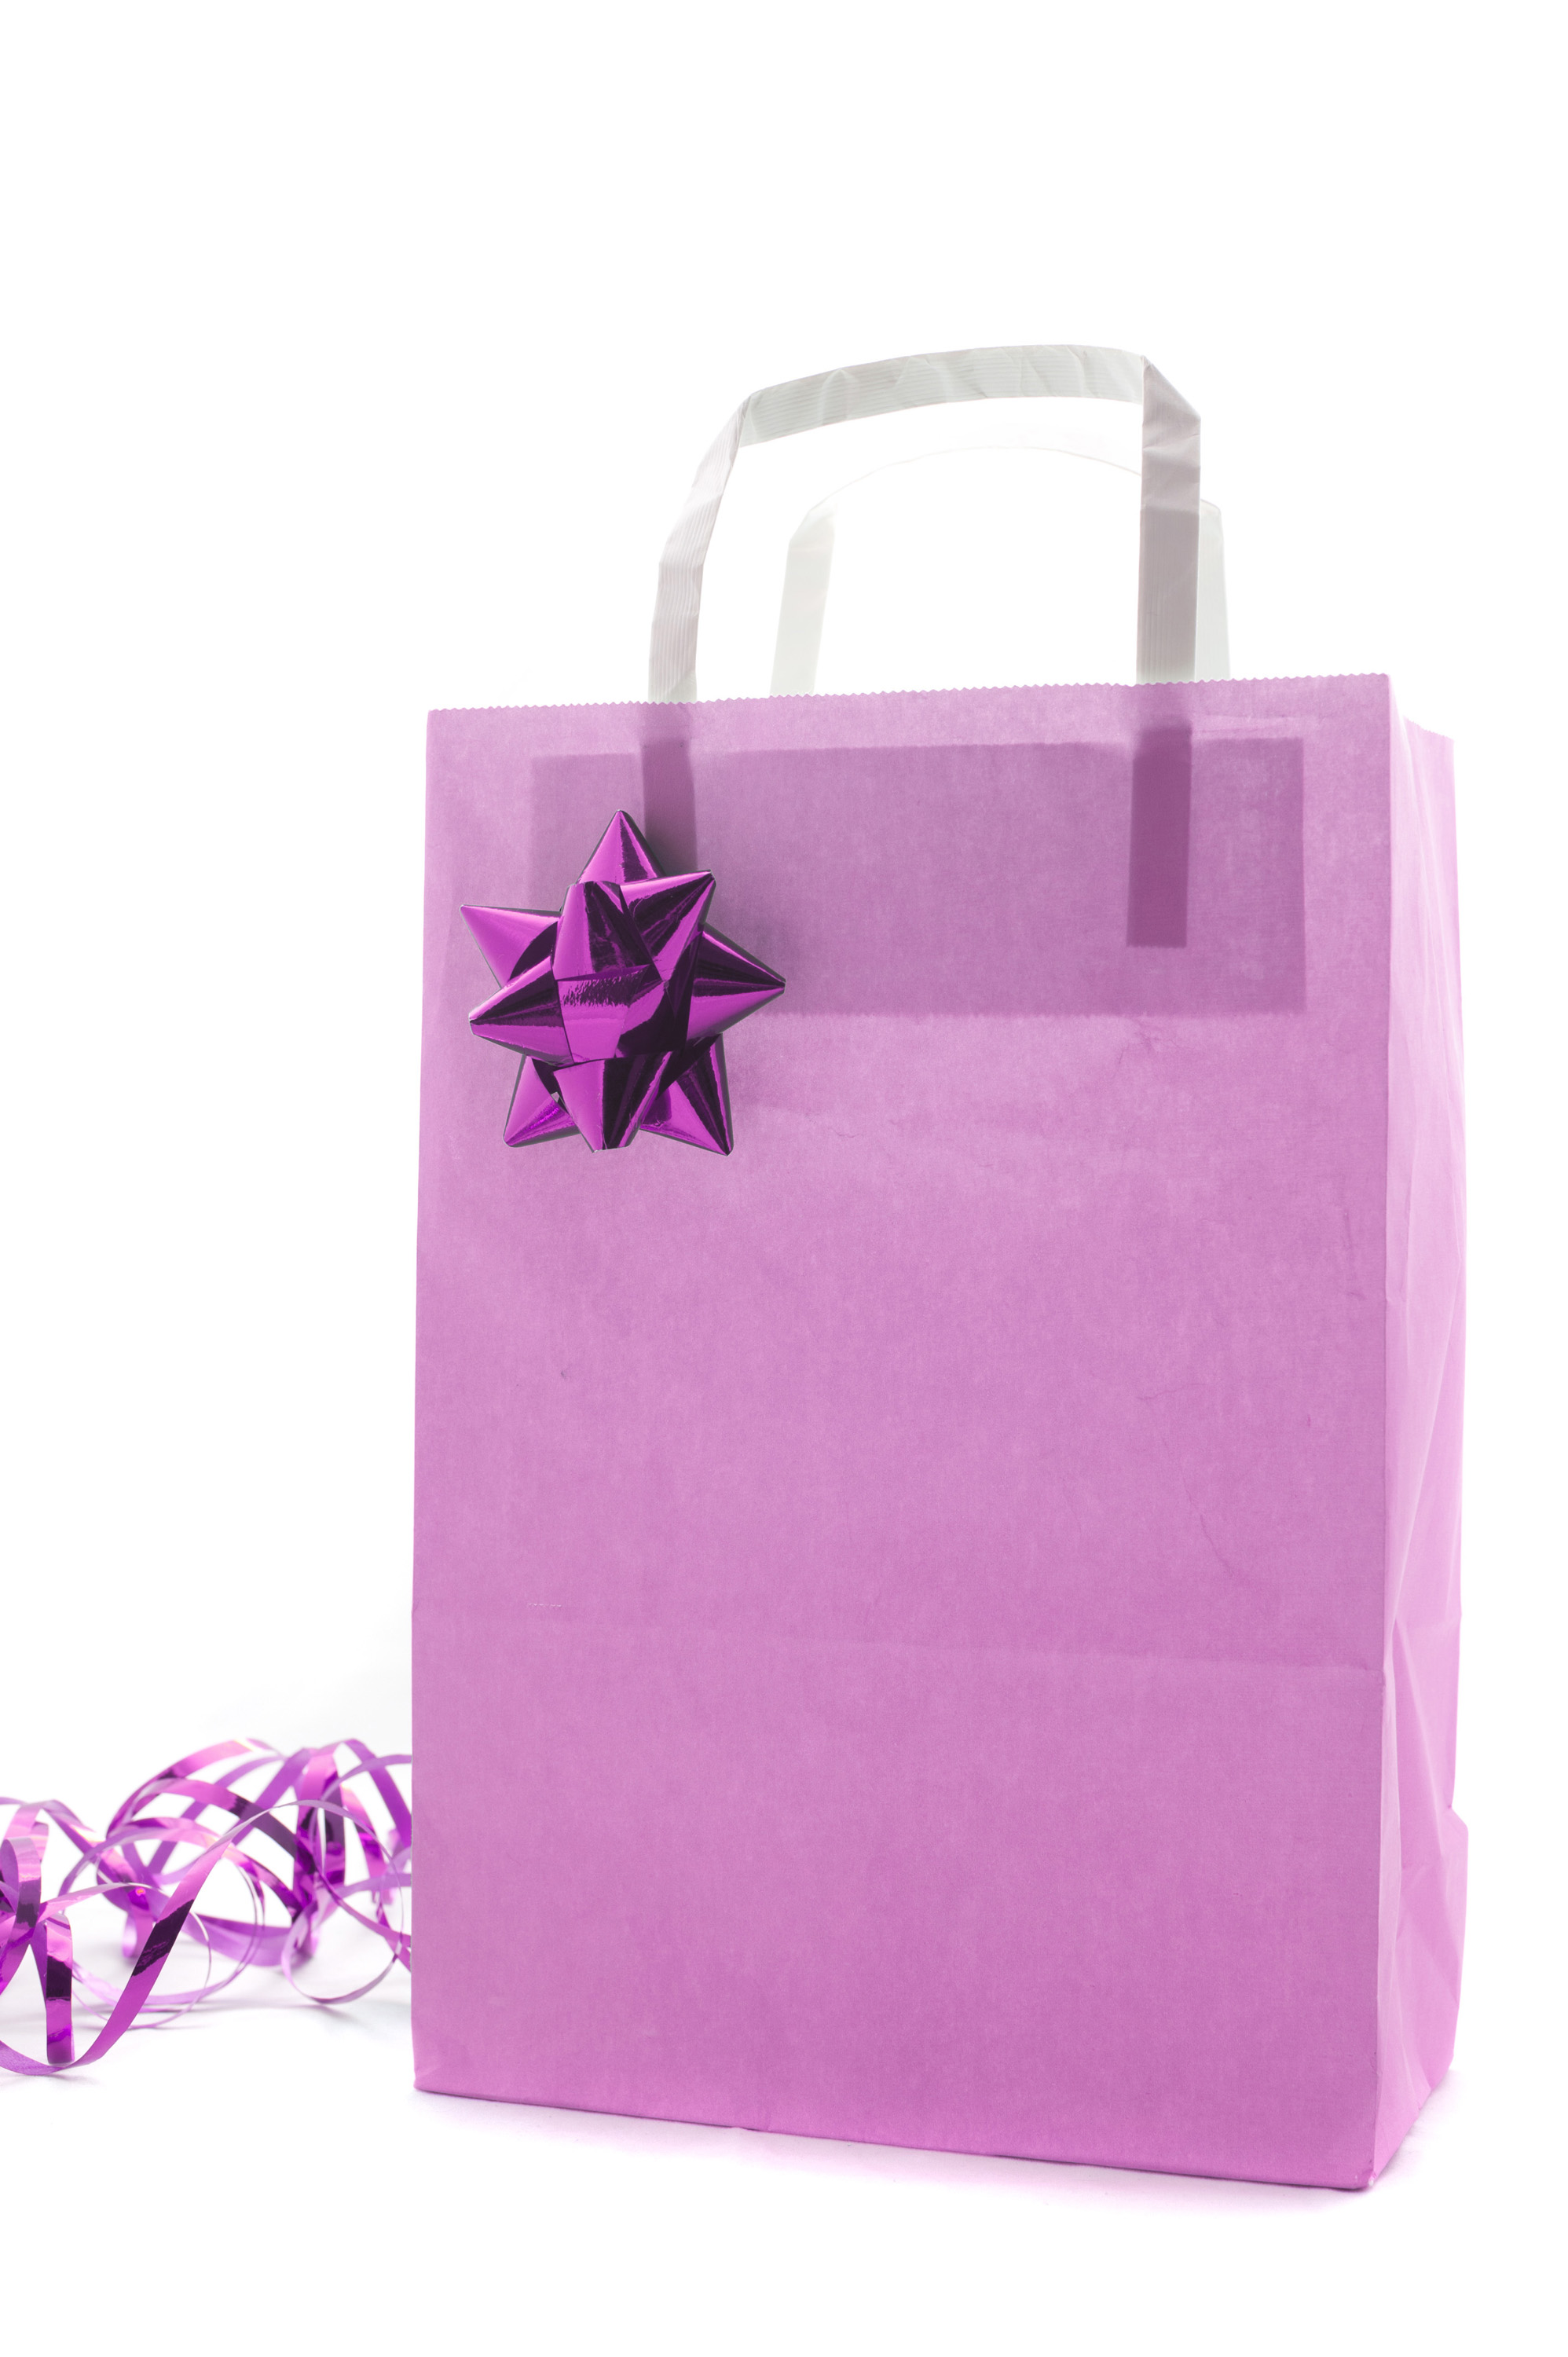 Photo of pink christmas shopping or gift bag free christmas images pink christmas shopping or gift bag decorated with a metallic bow and twirled ribbon isolated on negle Image collections